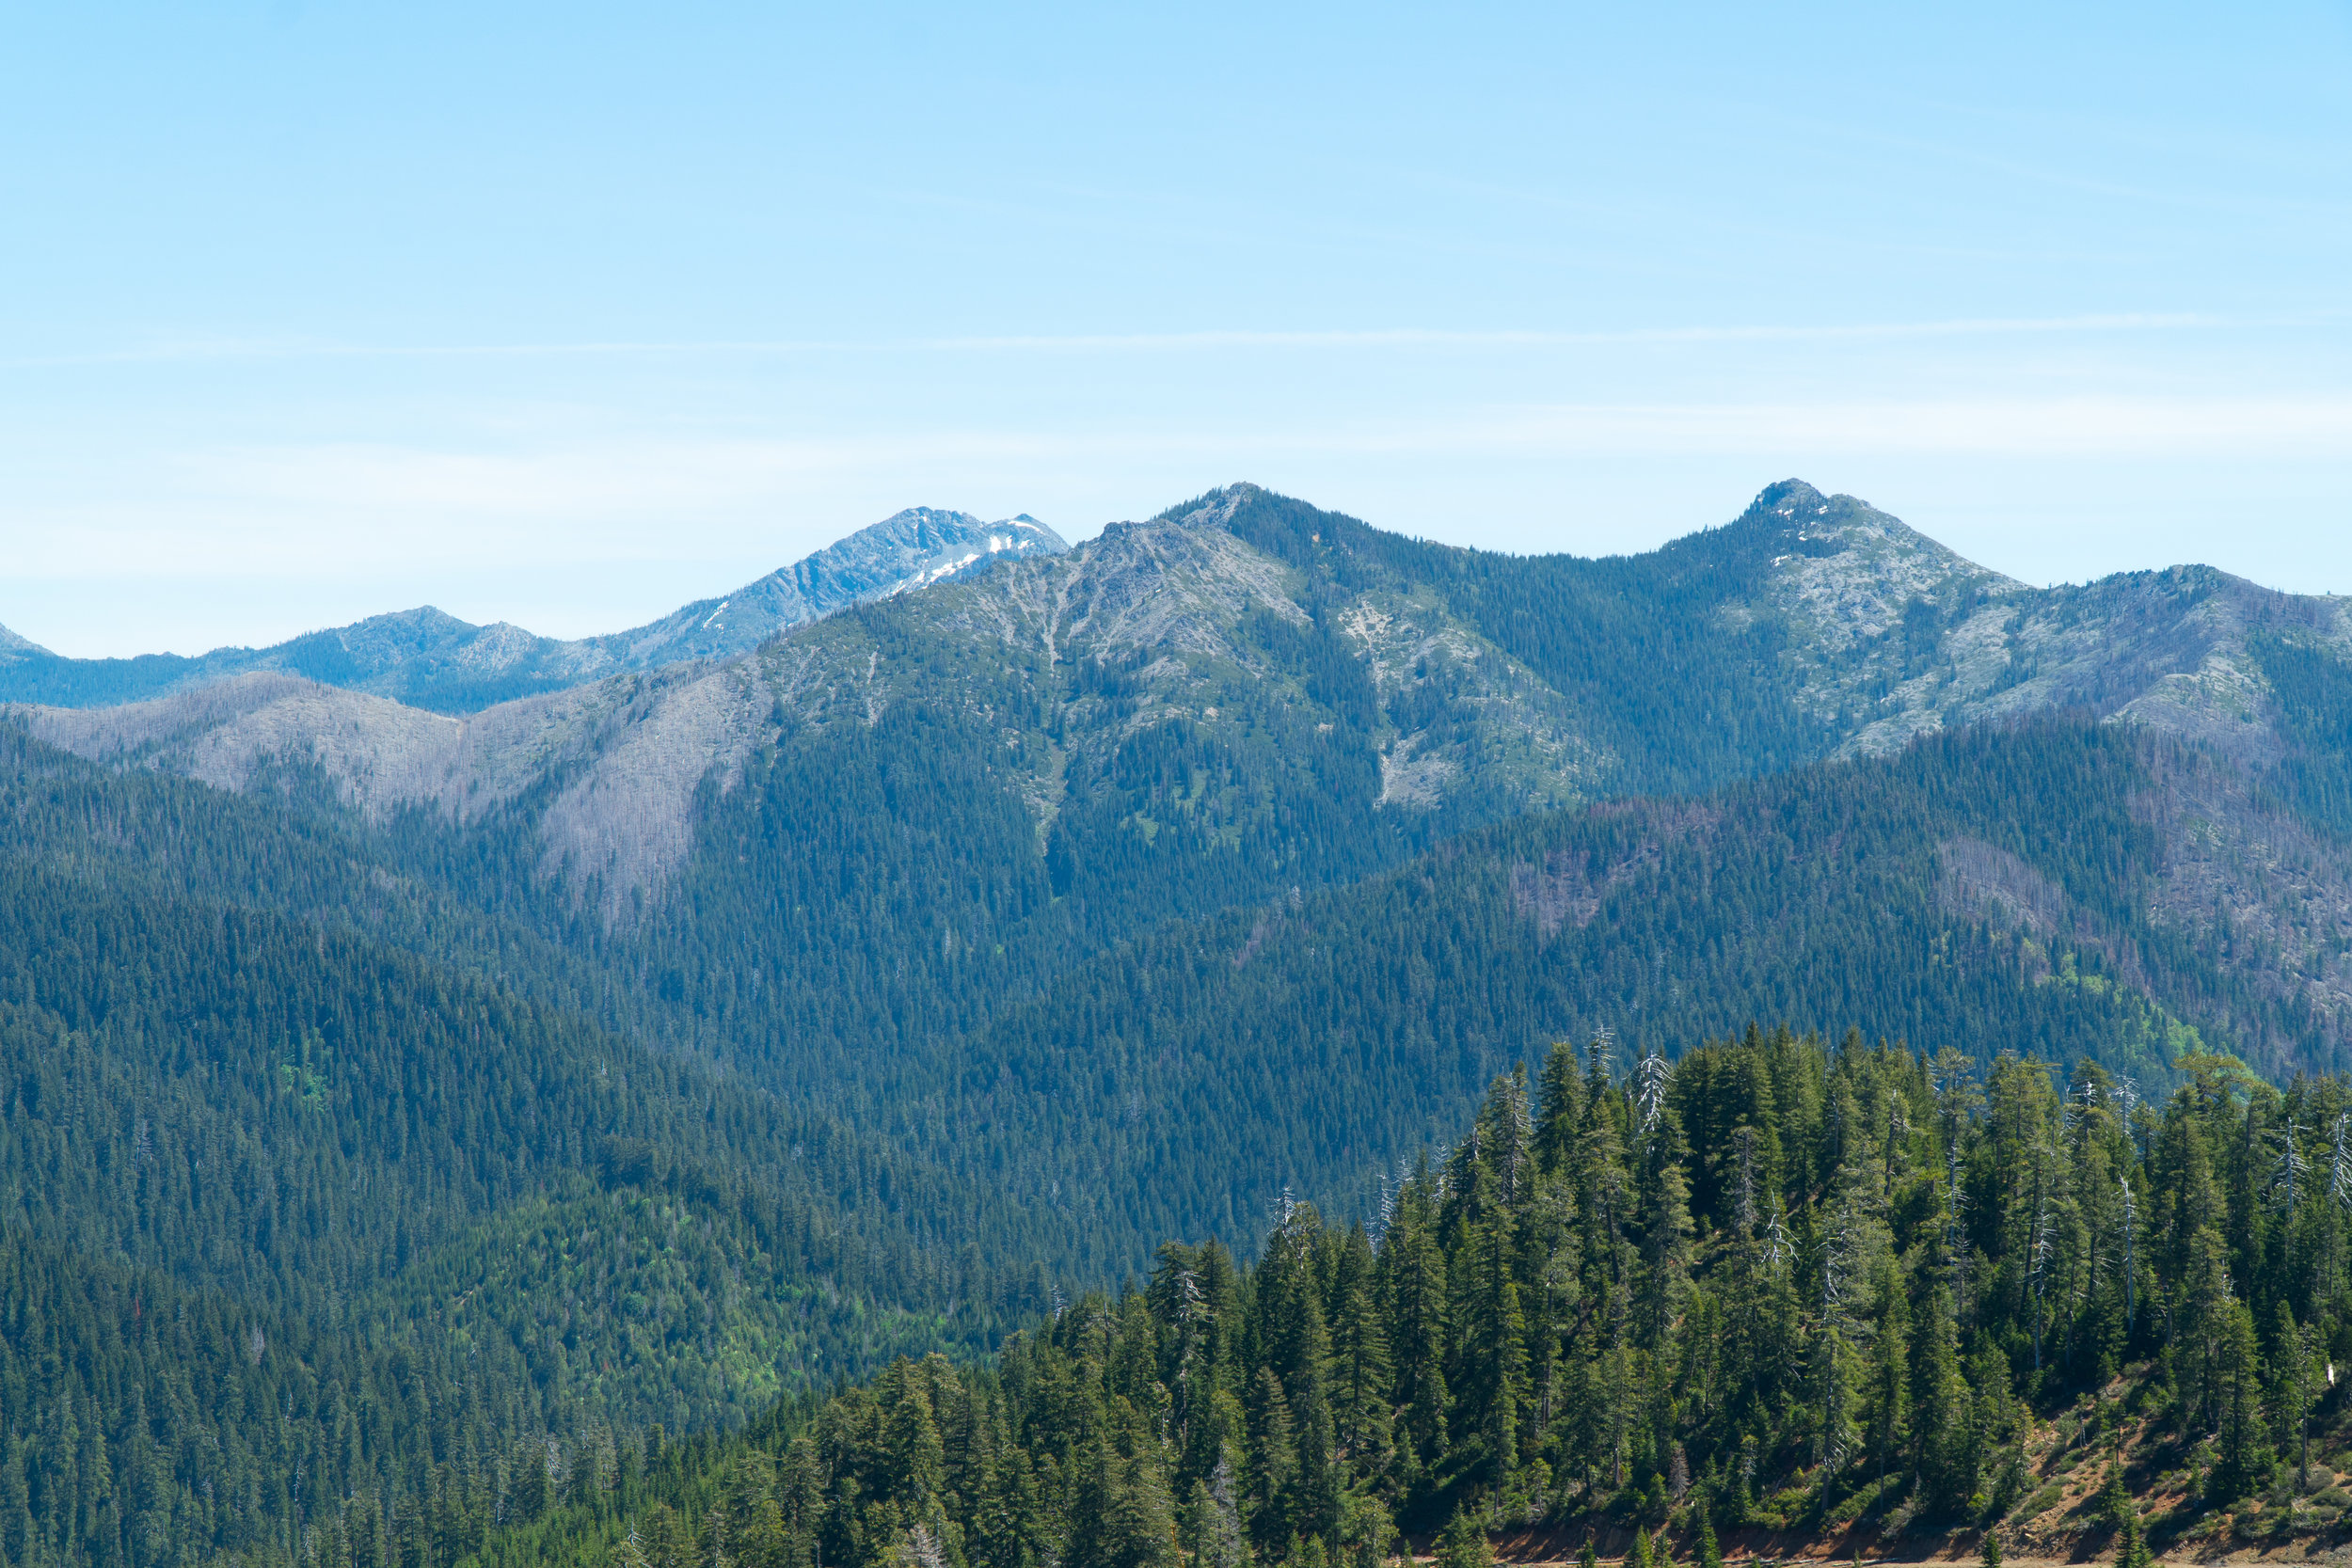 Sprawling forests in the Smith River National Recreation area